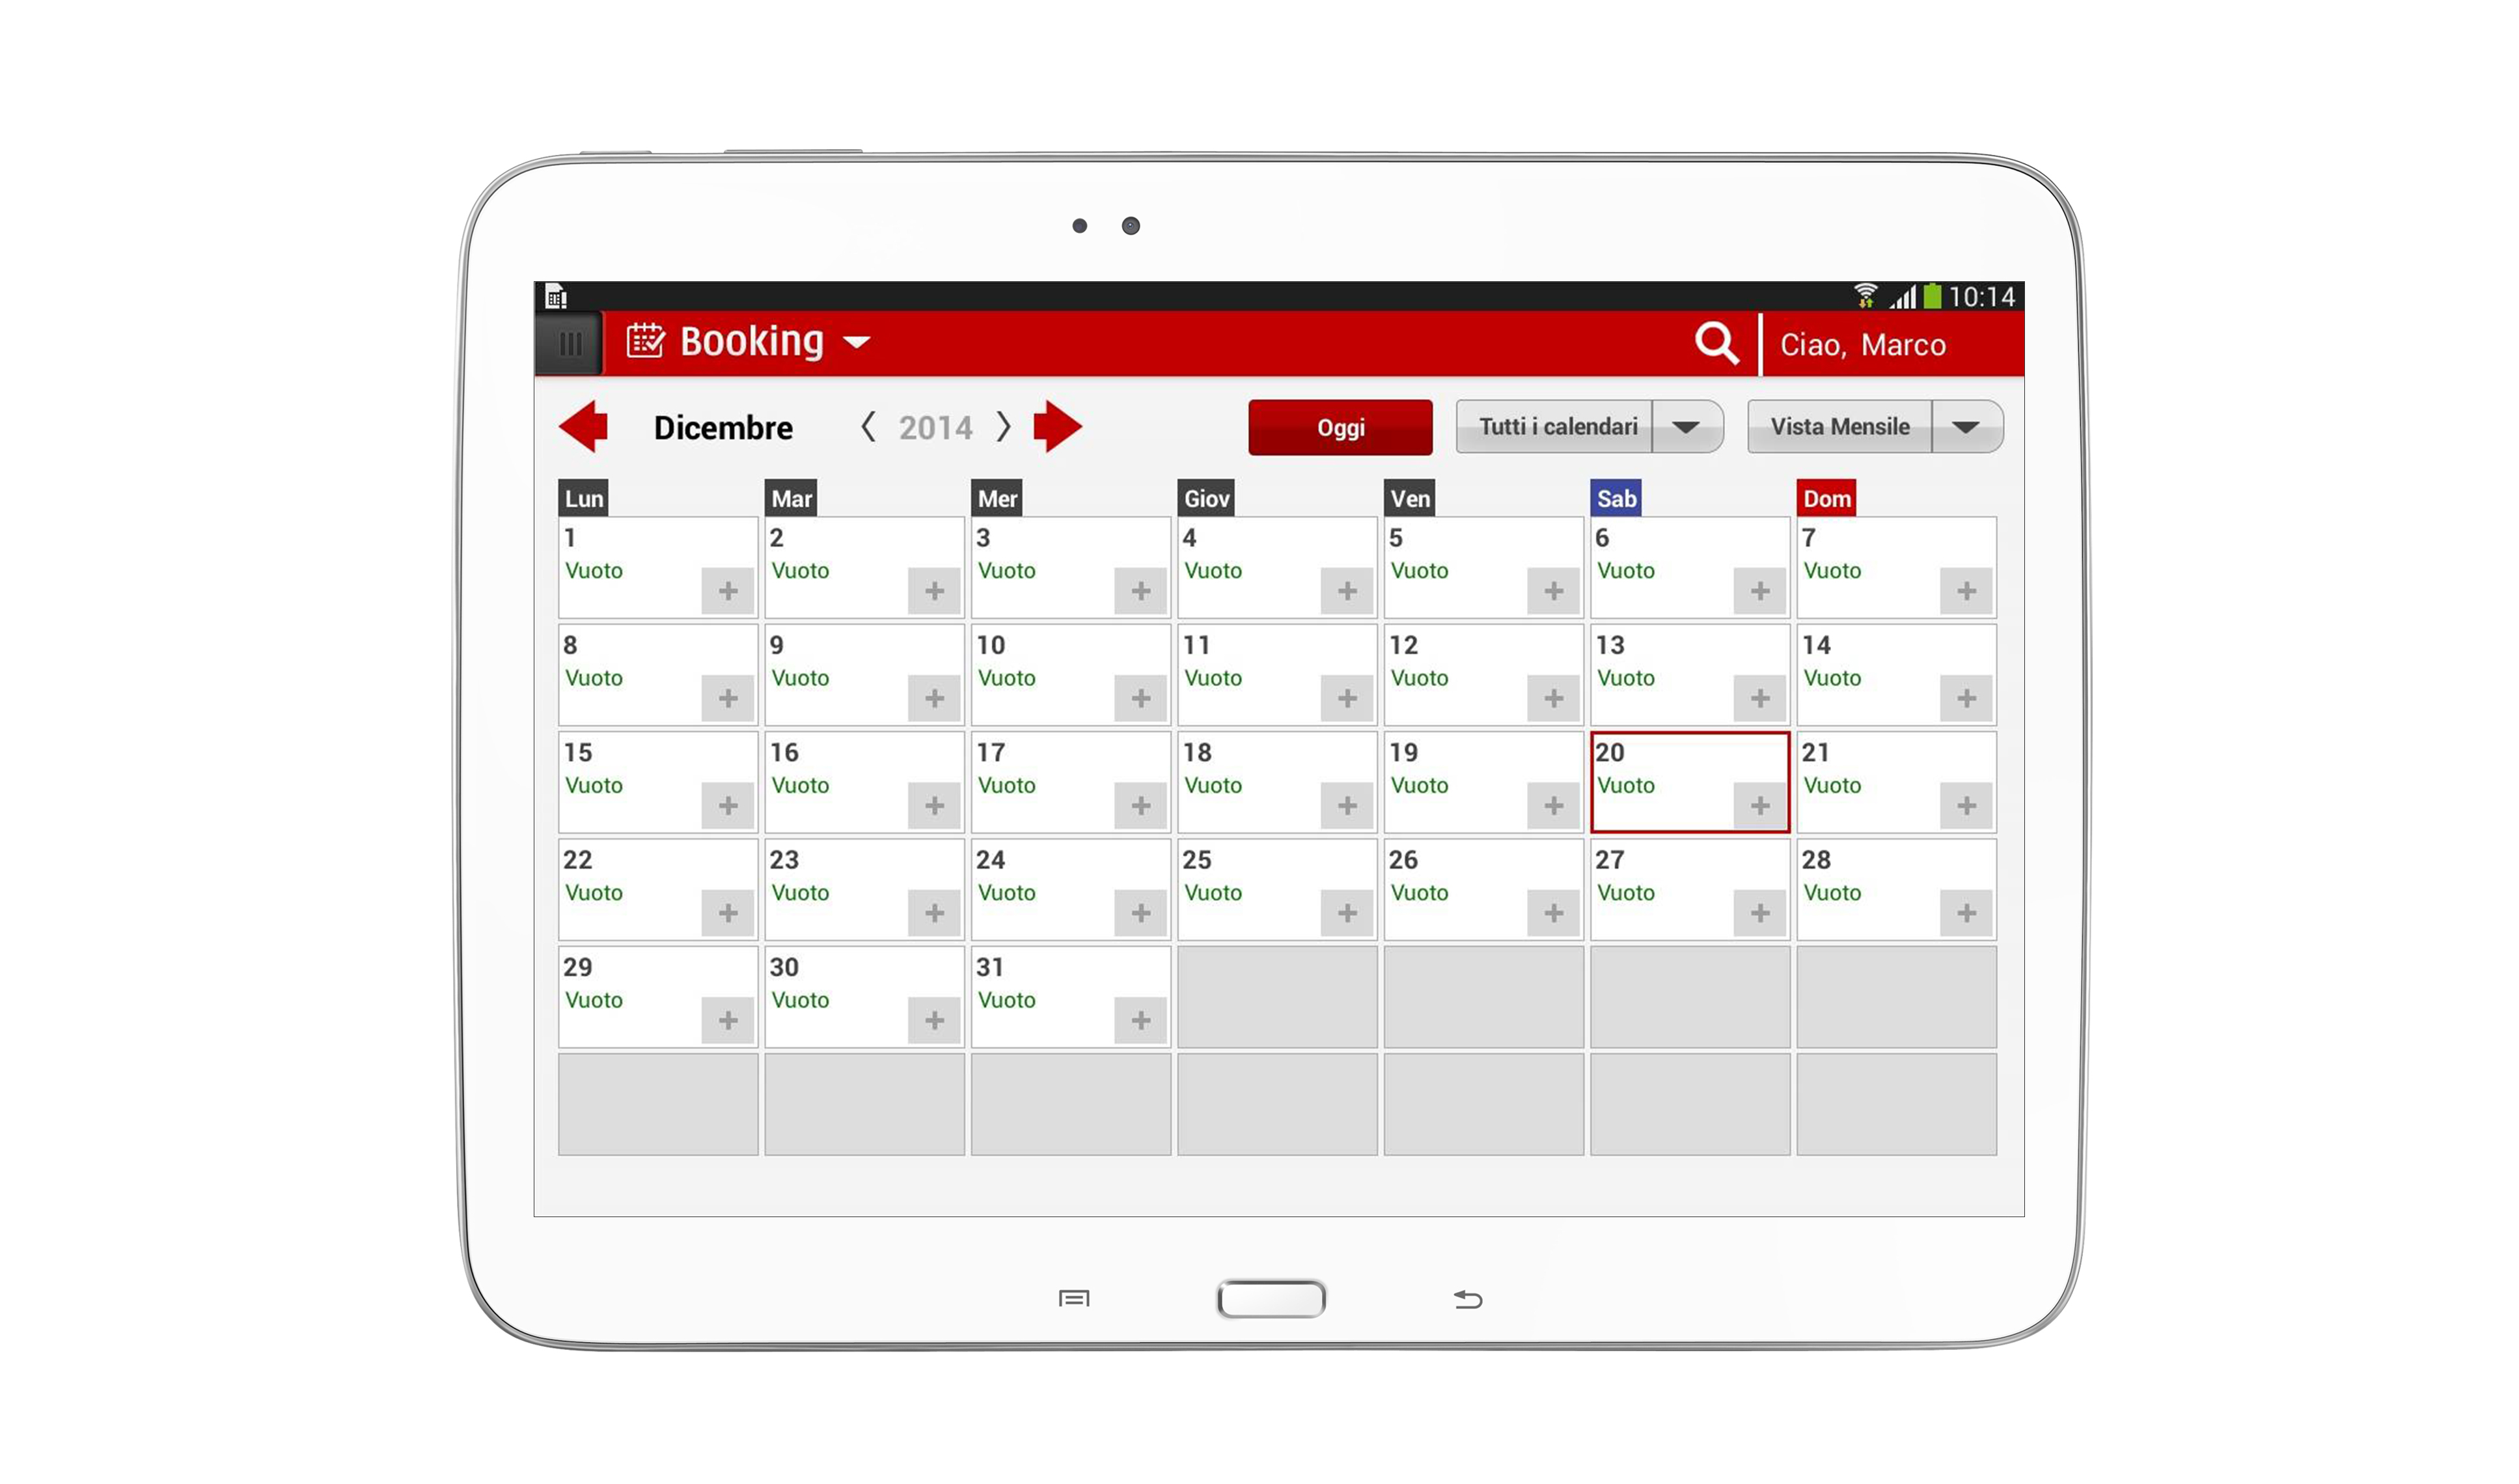 Schermata Booking Rapidoo calendario appuntamenti